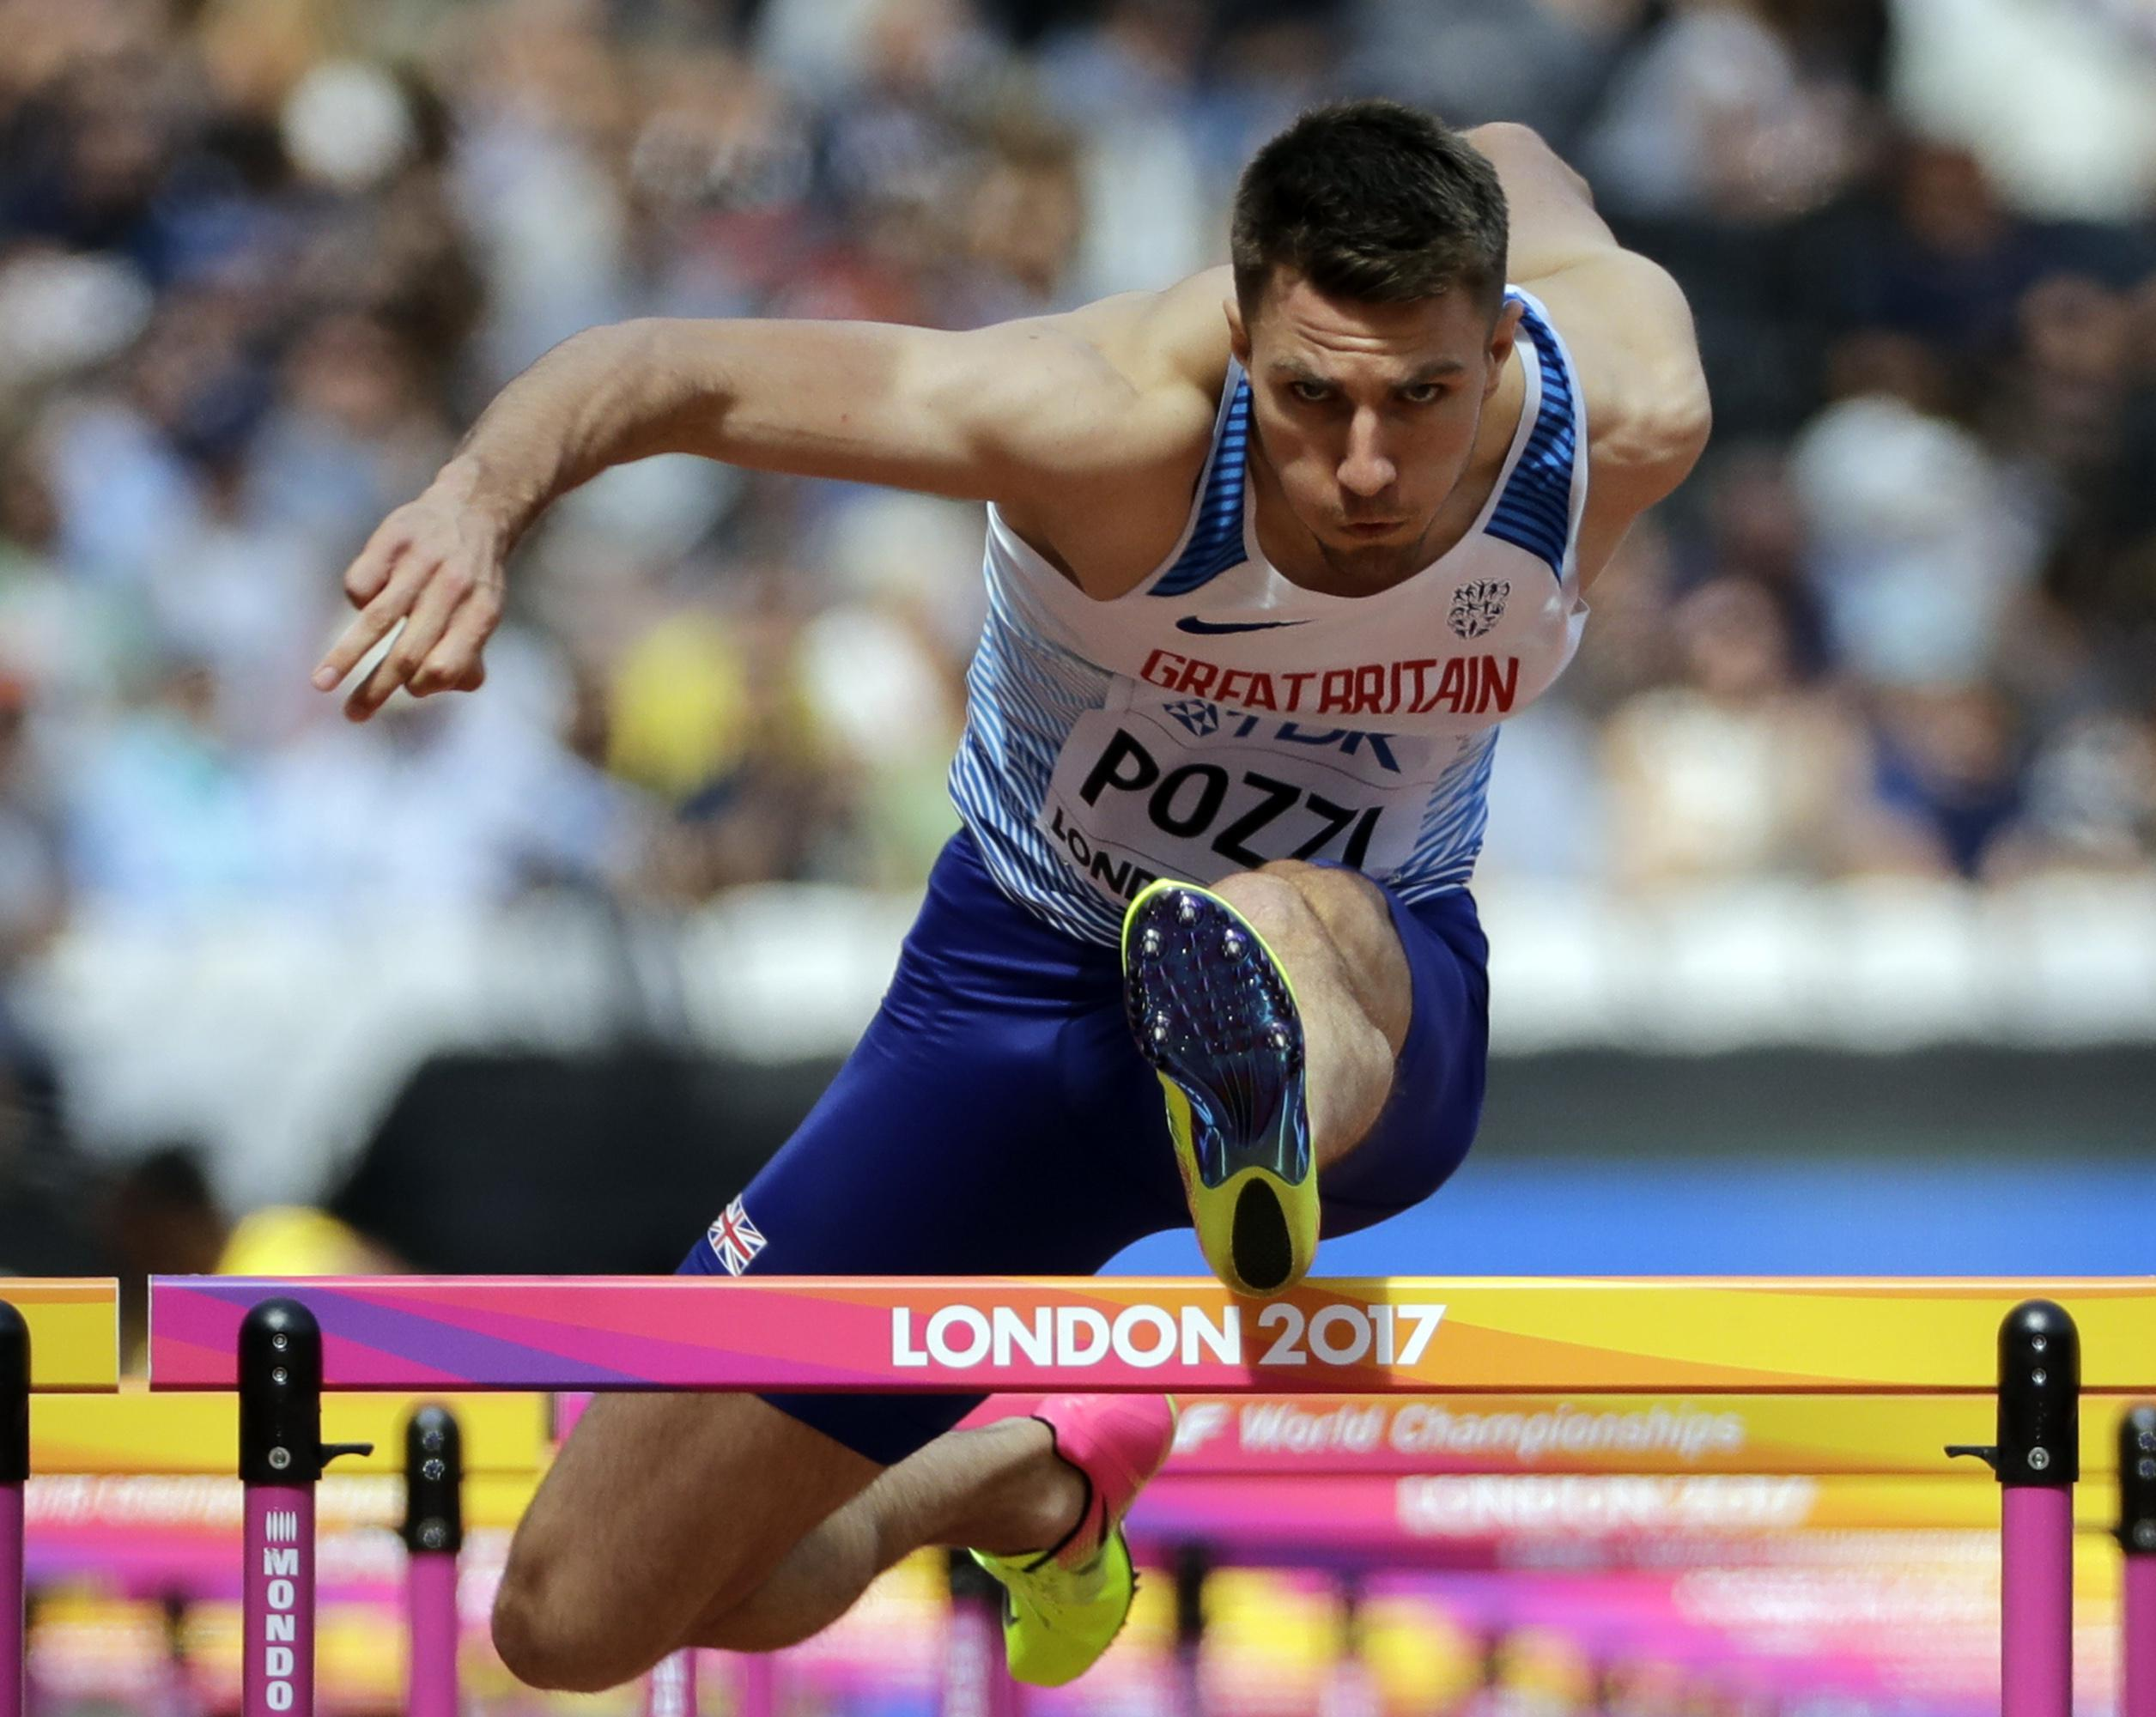 Pozzi looked impressive as he booked his place in the semi-finals by winning his heat